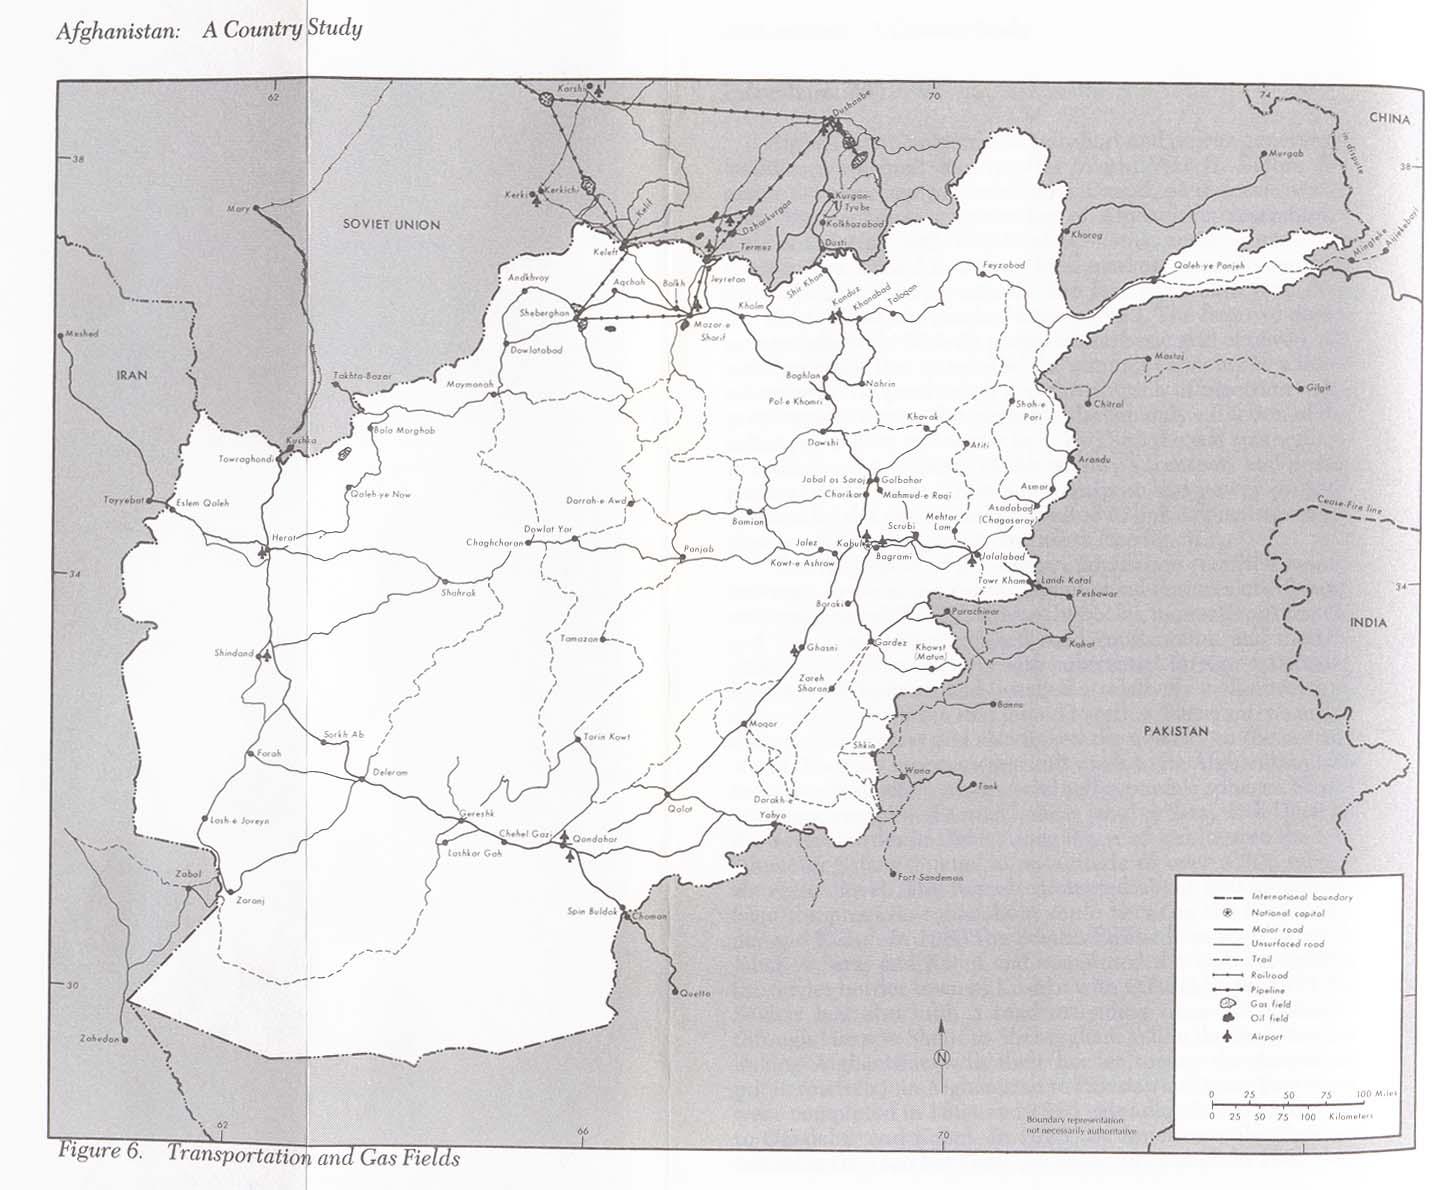 Afghanistan Transportation and Gas Fields Map